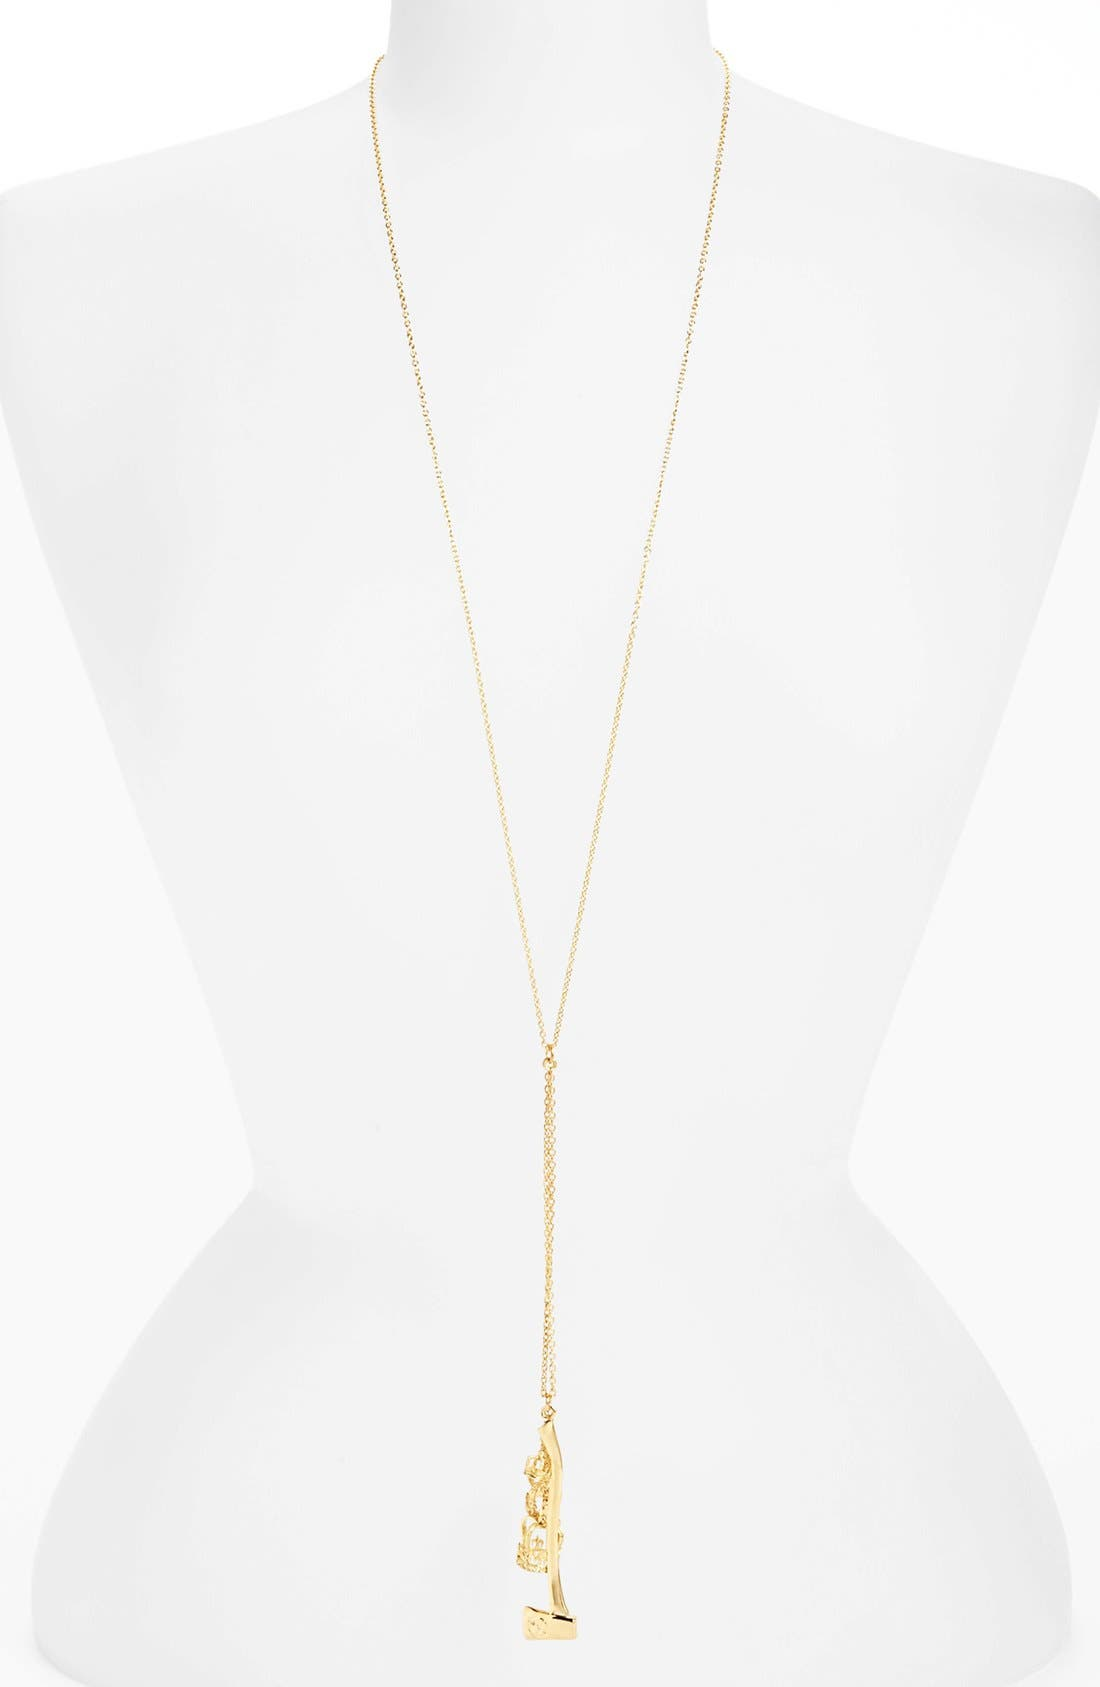 Main Image - Tom Binns 'Charm Offensive' Charm Necklace